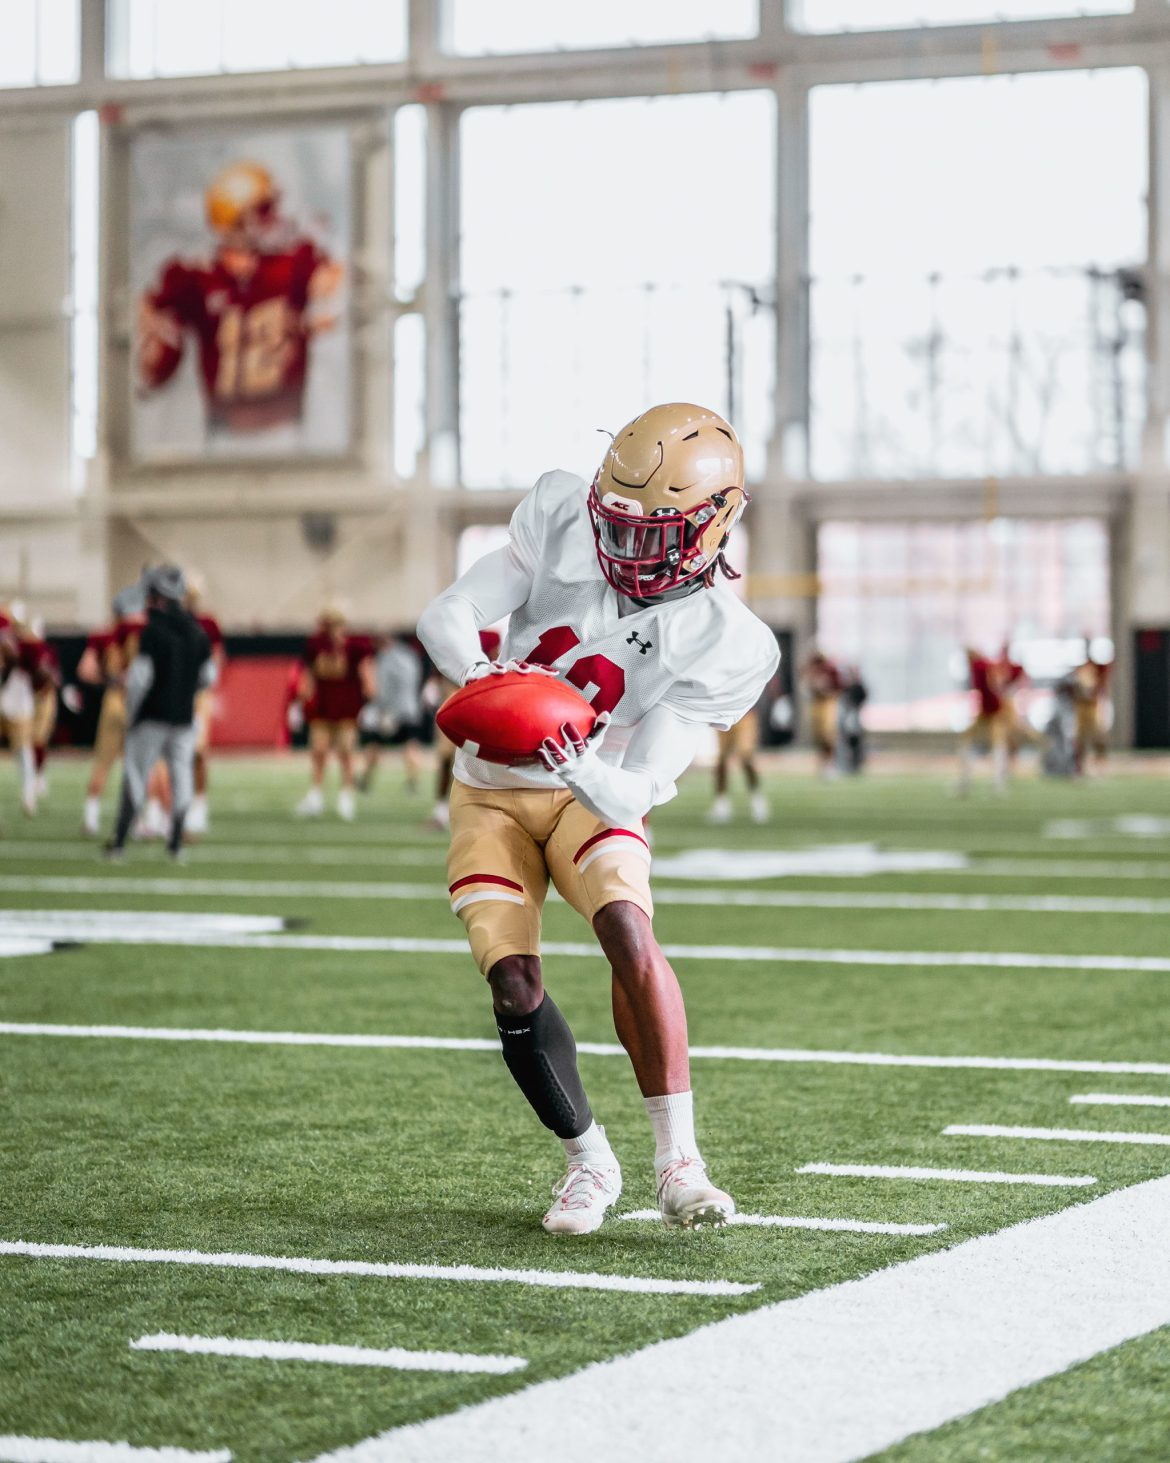 BC Spring Football Blog #7: Eagles Return to Practice Field in Full Pads